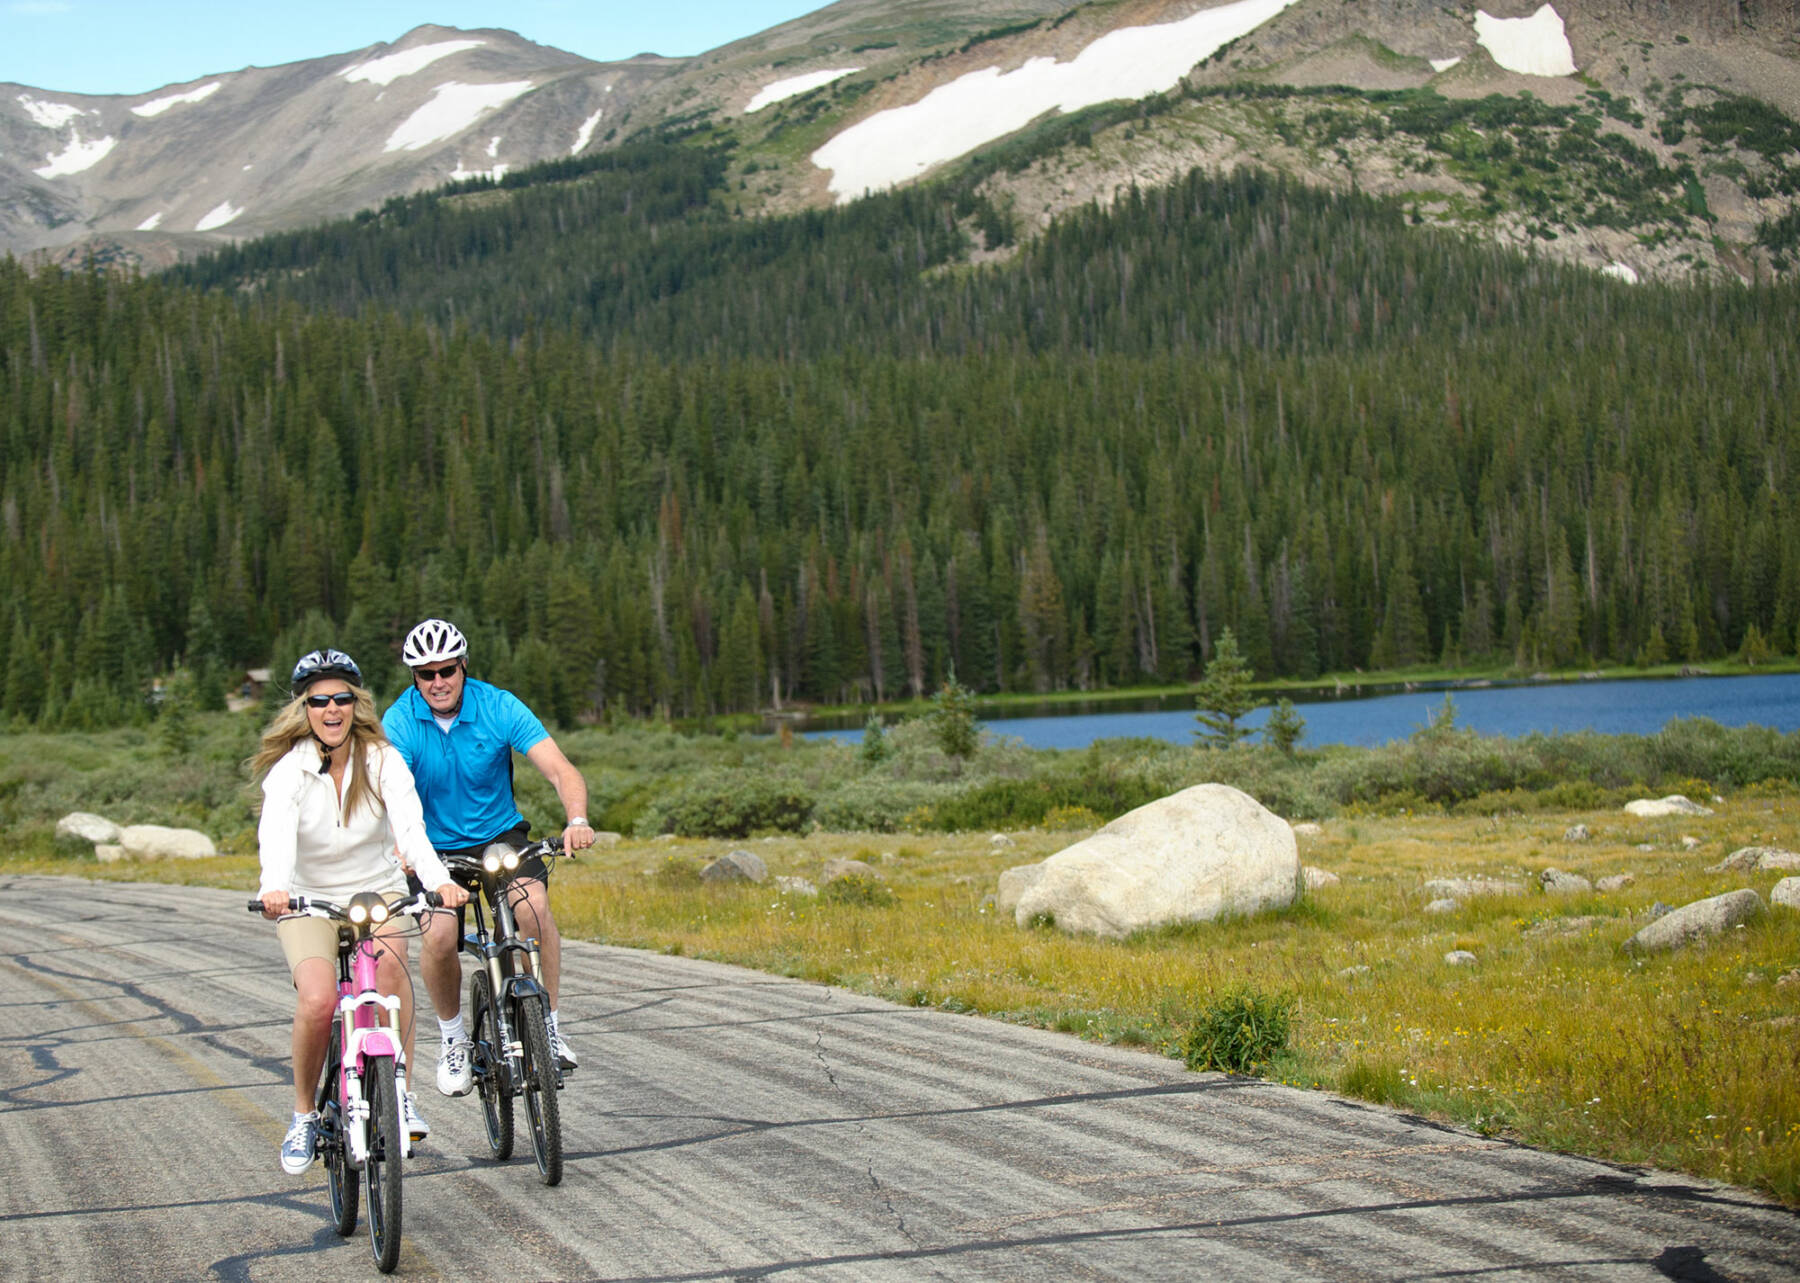 Couple riding optibikes with snowy mountains and lake in the background